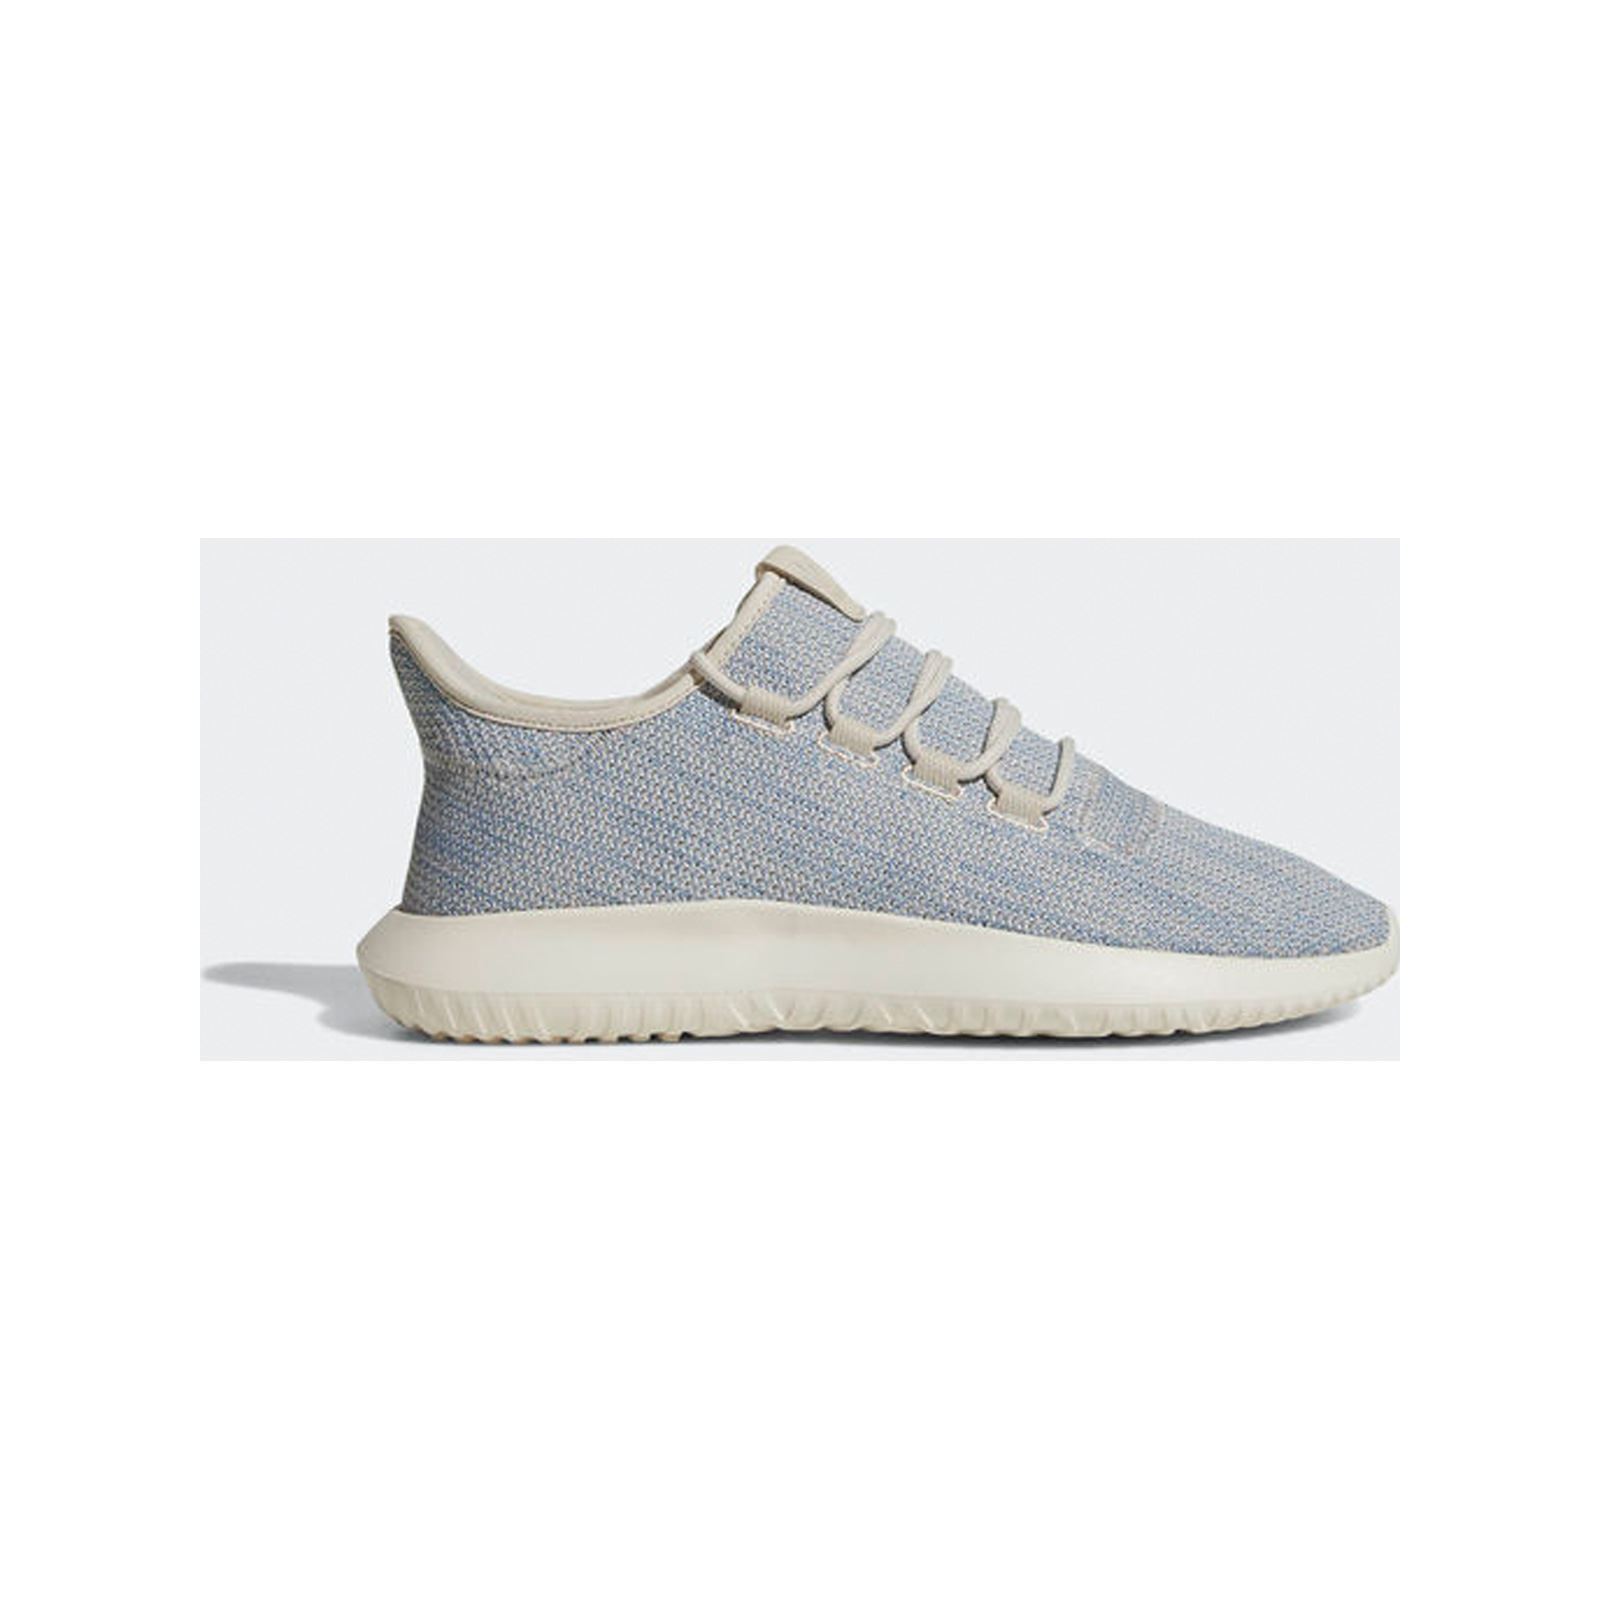 e292267b2057a Adidas Originals Tubular Shadow ck - Baskets - bleu   BrandAlley